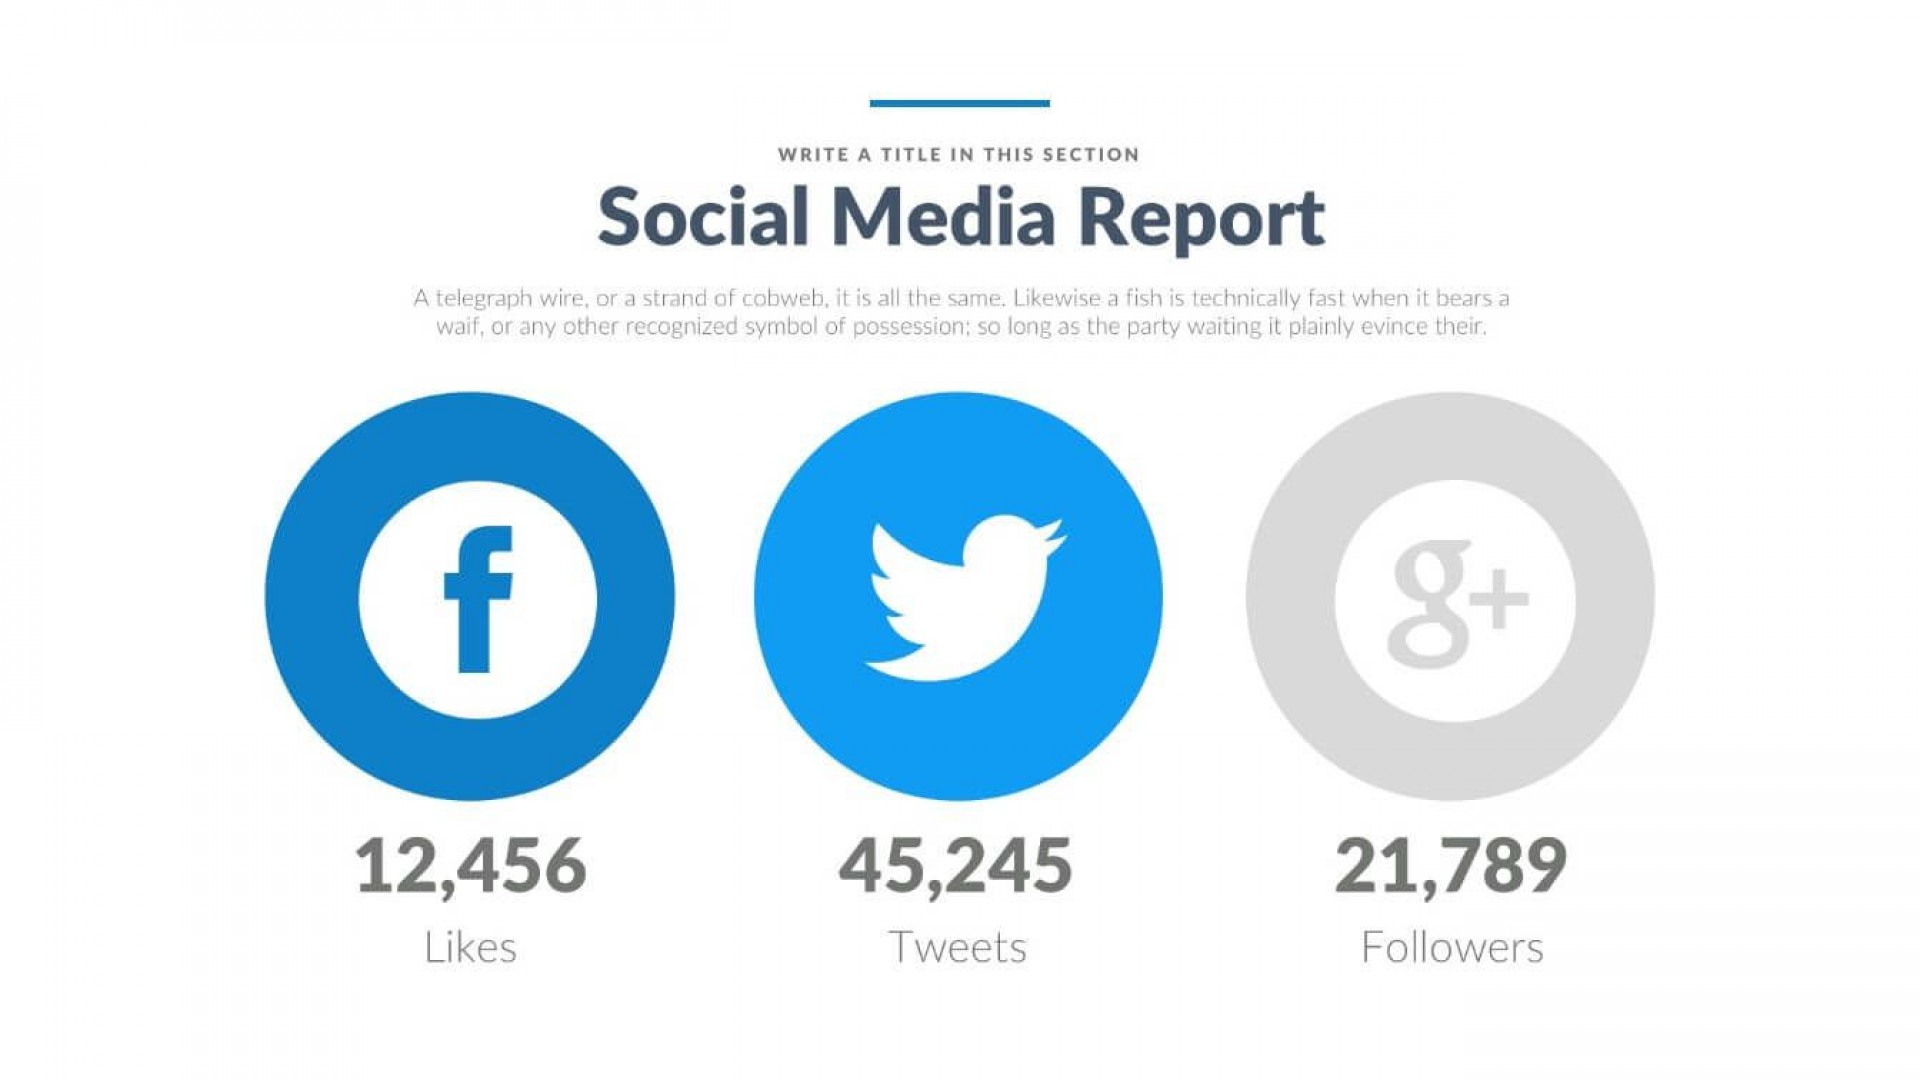 008 Fearsome Social Media Ppt Template Free Sample  Download Report Powerpoint1920